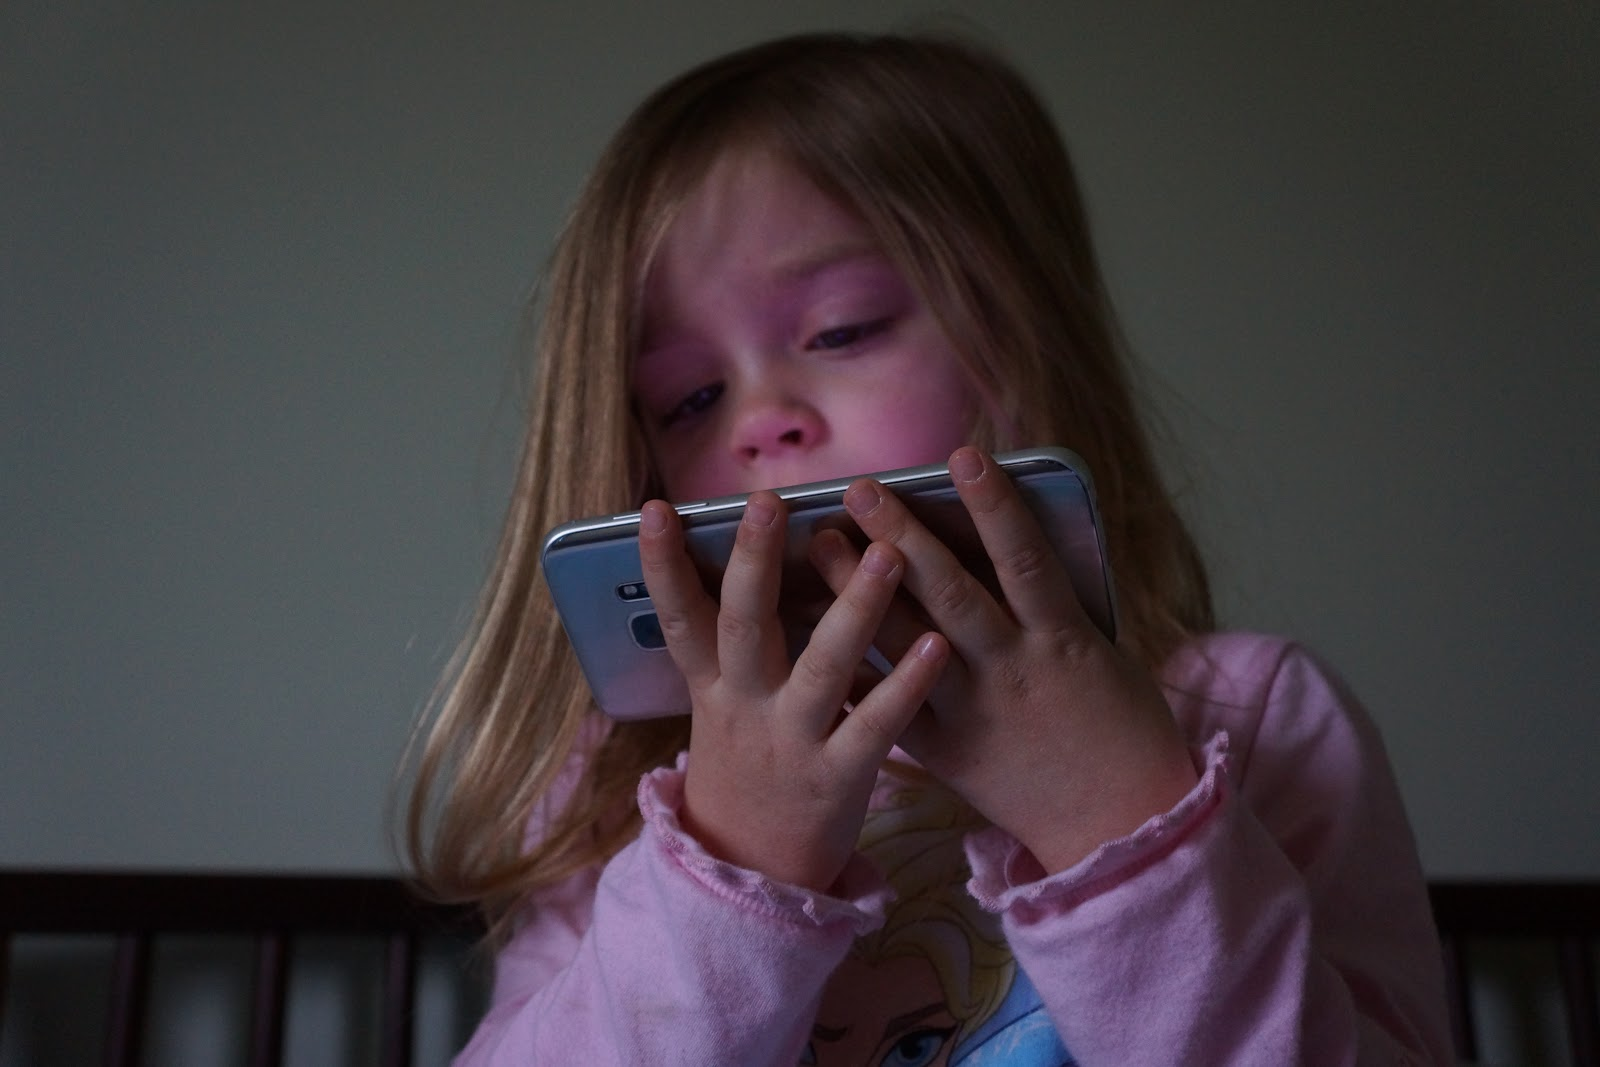 toddler girl watching a mobile film